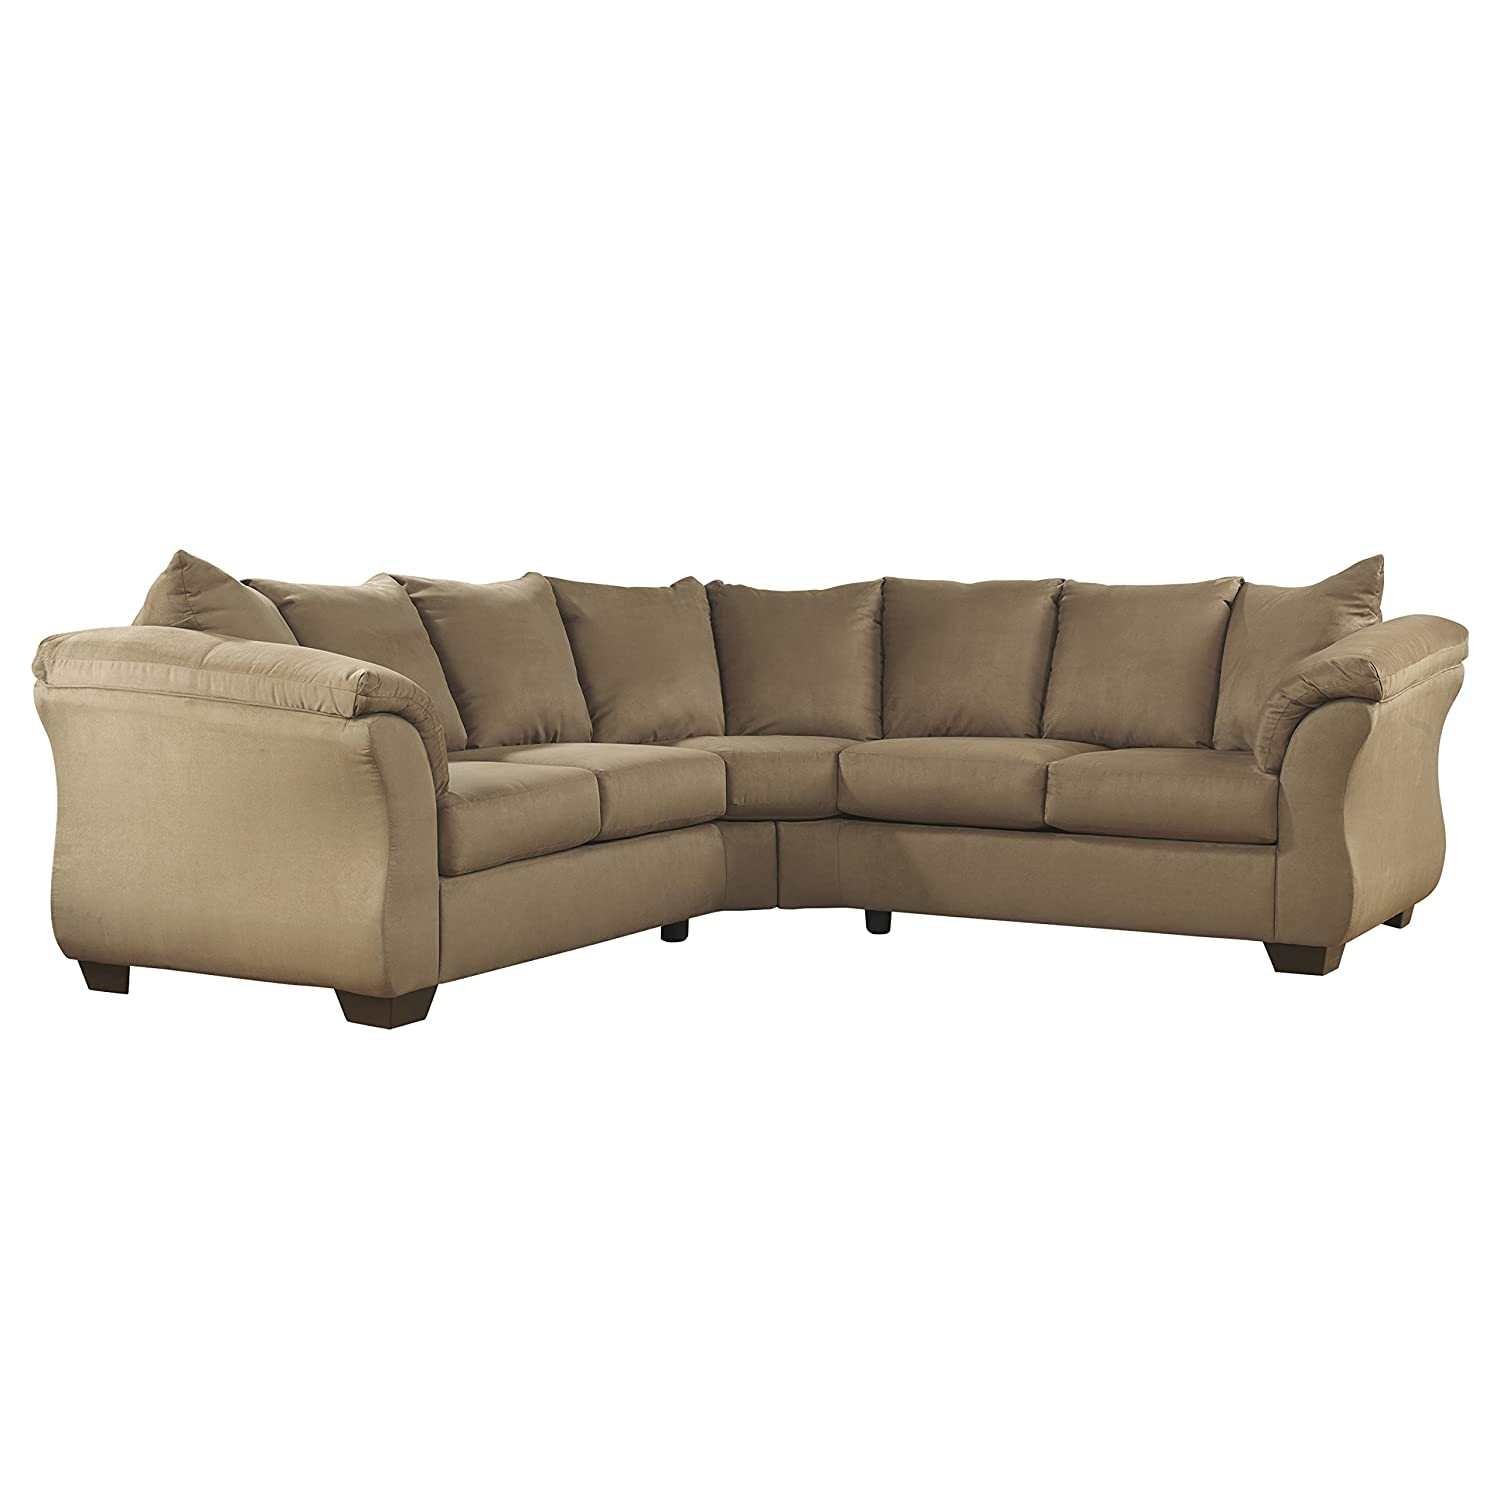 Amazon Signature Design by Ashley Darcy Sectional in Salsa